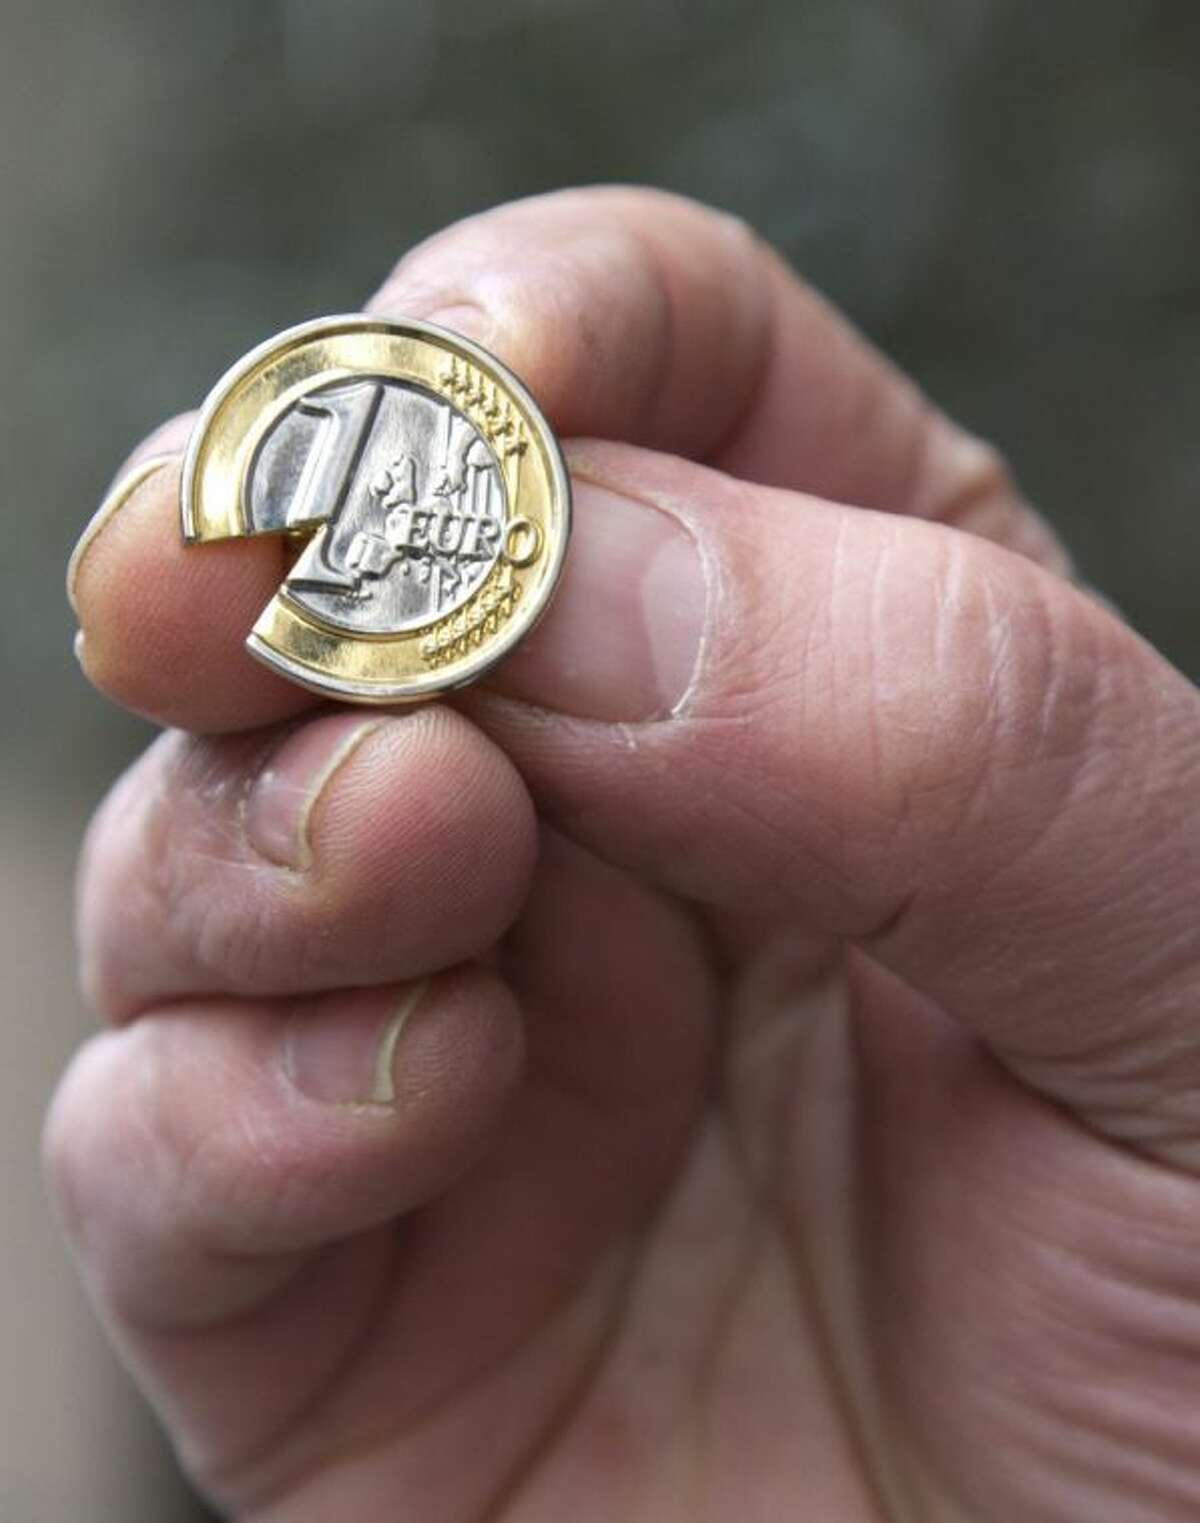 A Cypriot man, who did not wish to be identified, holds up a souvenir Cypriot euro coin lapel pin with a piece taken out near the Cypriot delegation building in Brussels on Sunday, March 24, 2013. The EU says a top official will chair a high-level meeting on Cyprus in a last-ditch effort to seal a deal before finance ministers decide whether the island nation gets a 10 billion euro bailout loan to save it from bankruptcy.